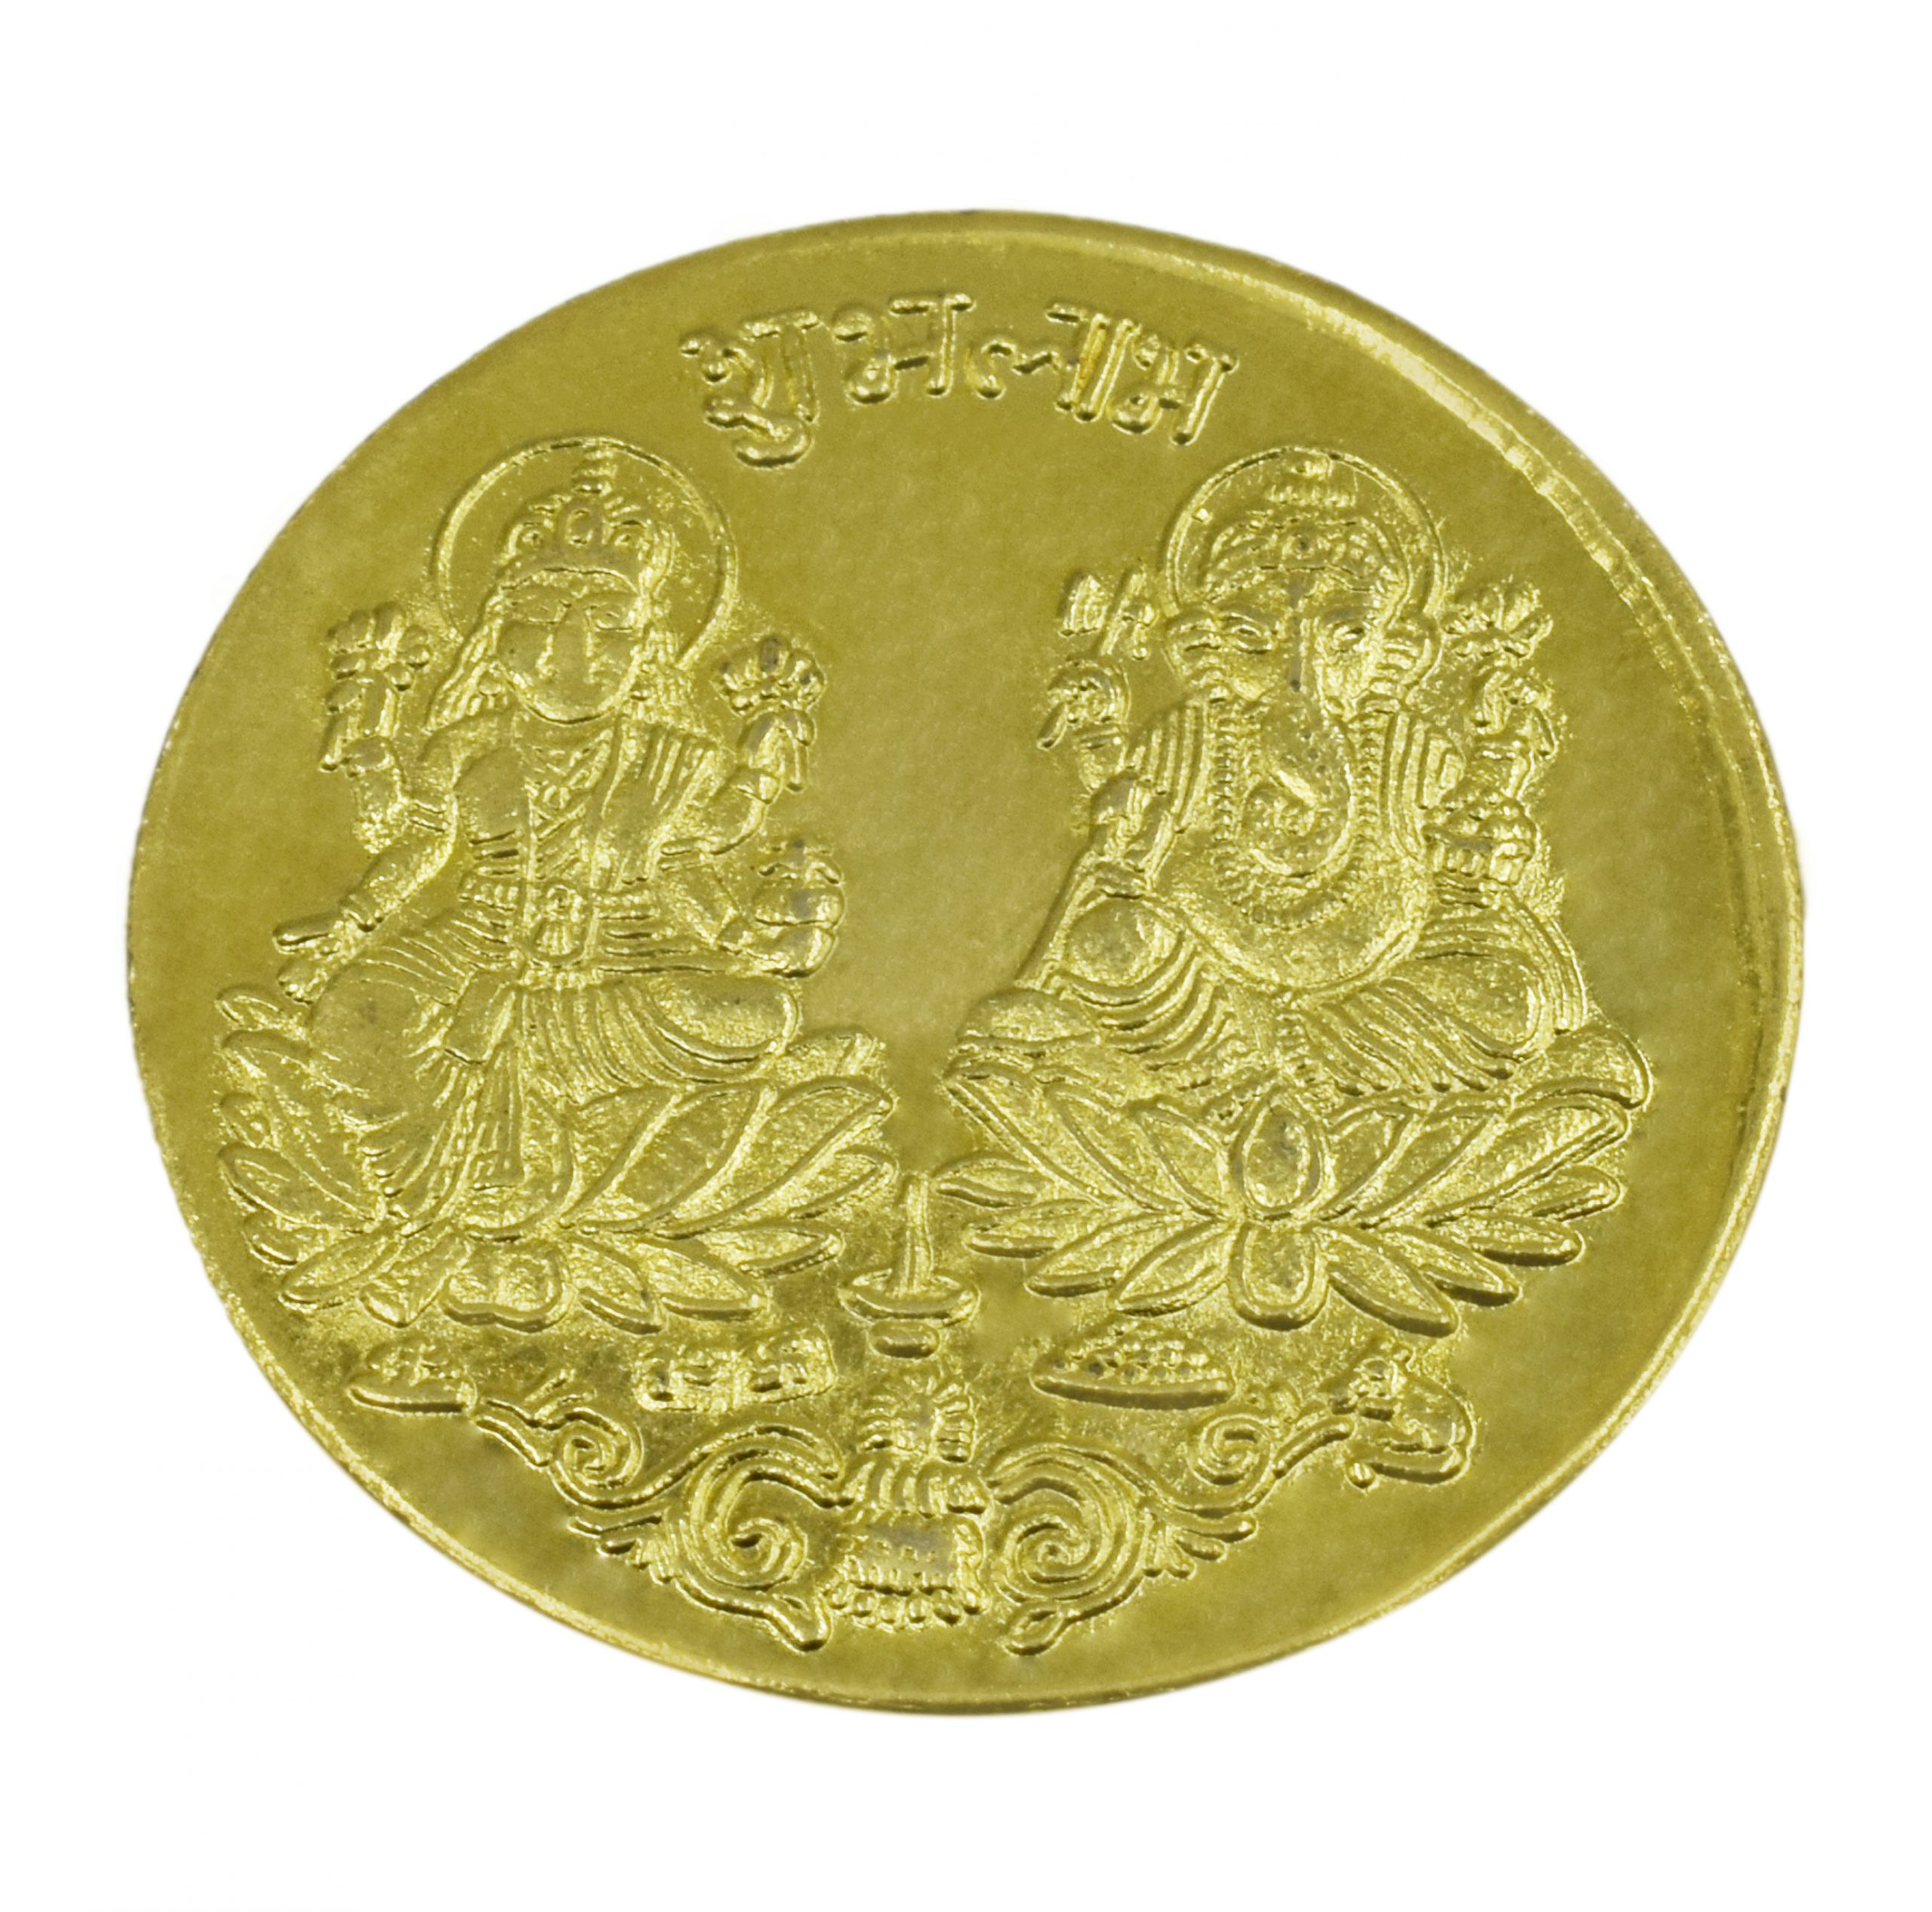 Buy Laxmi Coin Online with The Gold plated